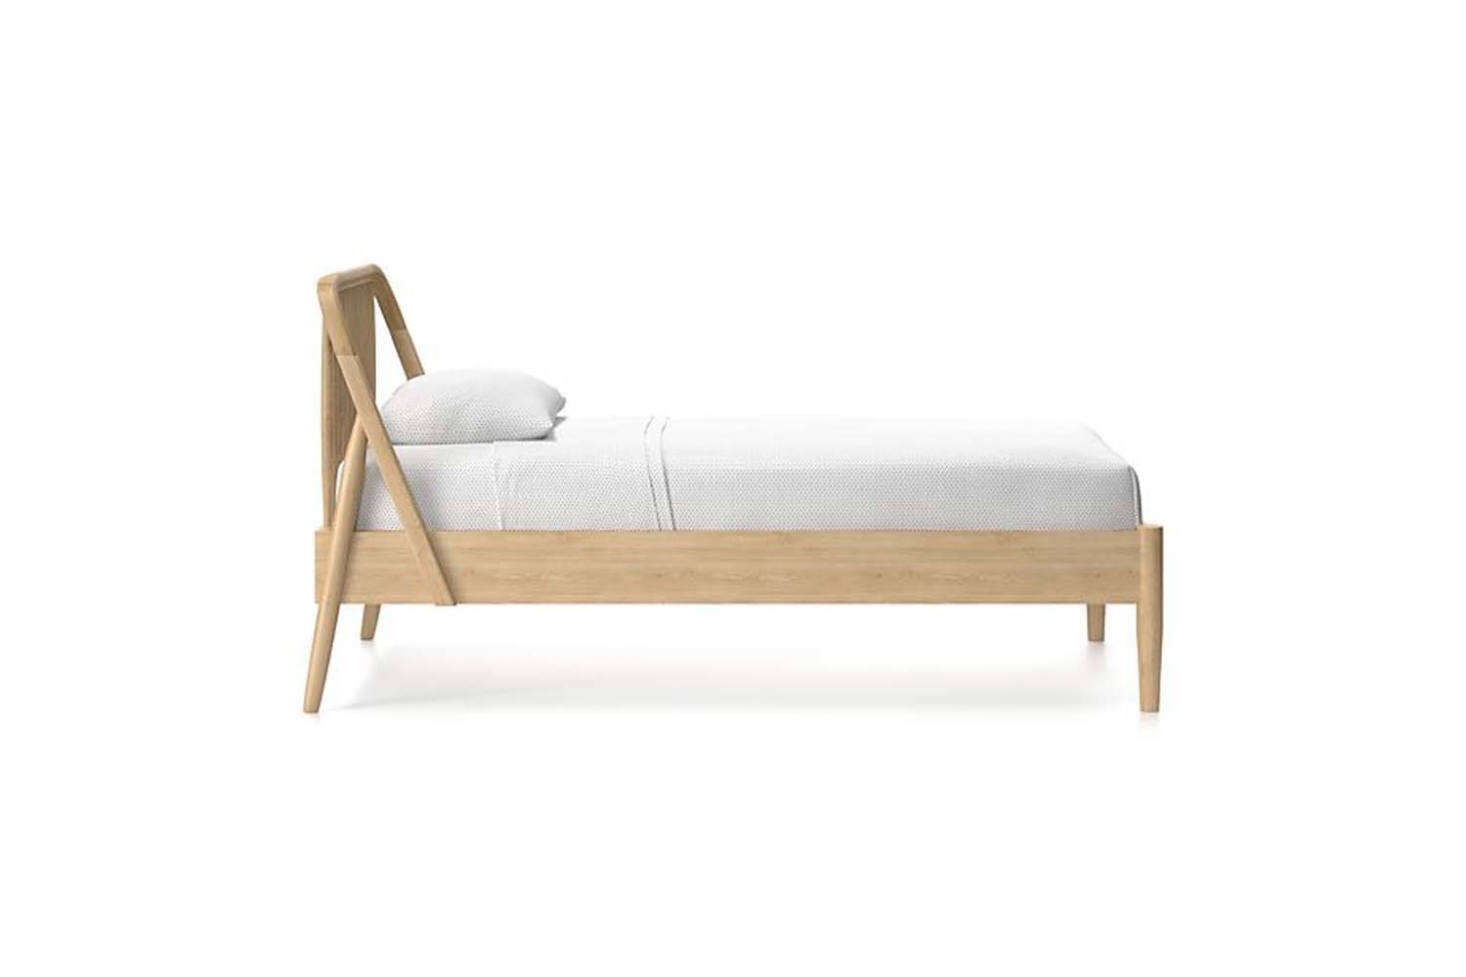 The Bodie Oak Spindle Bed starts at $src=